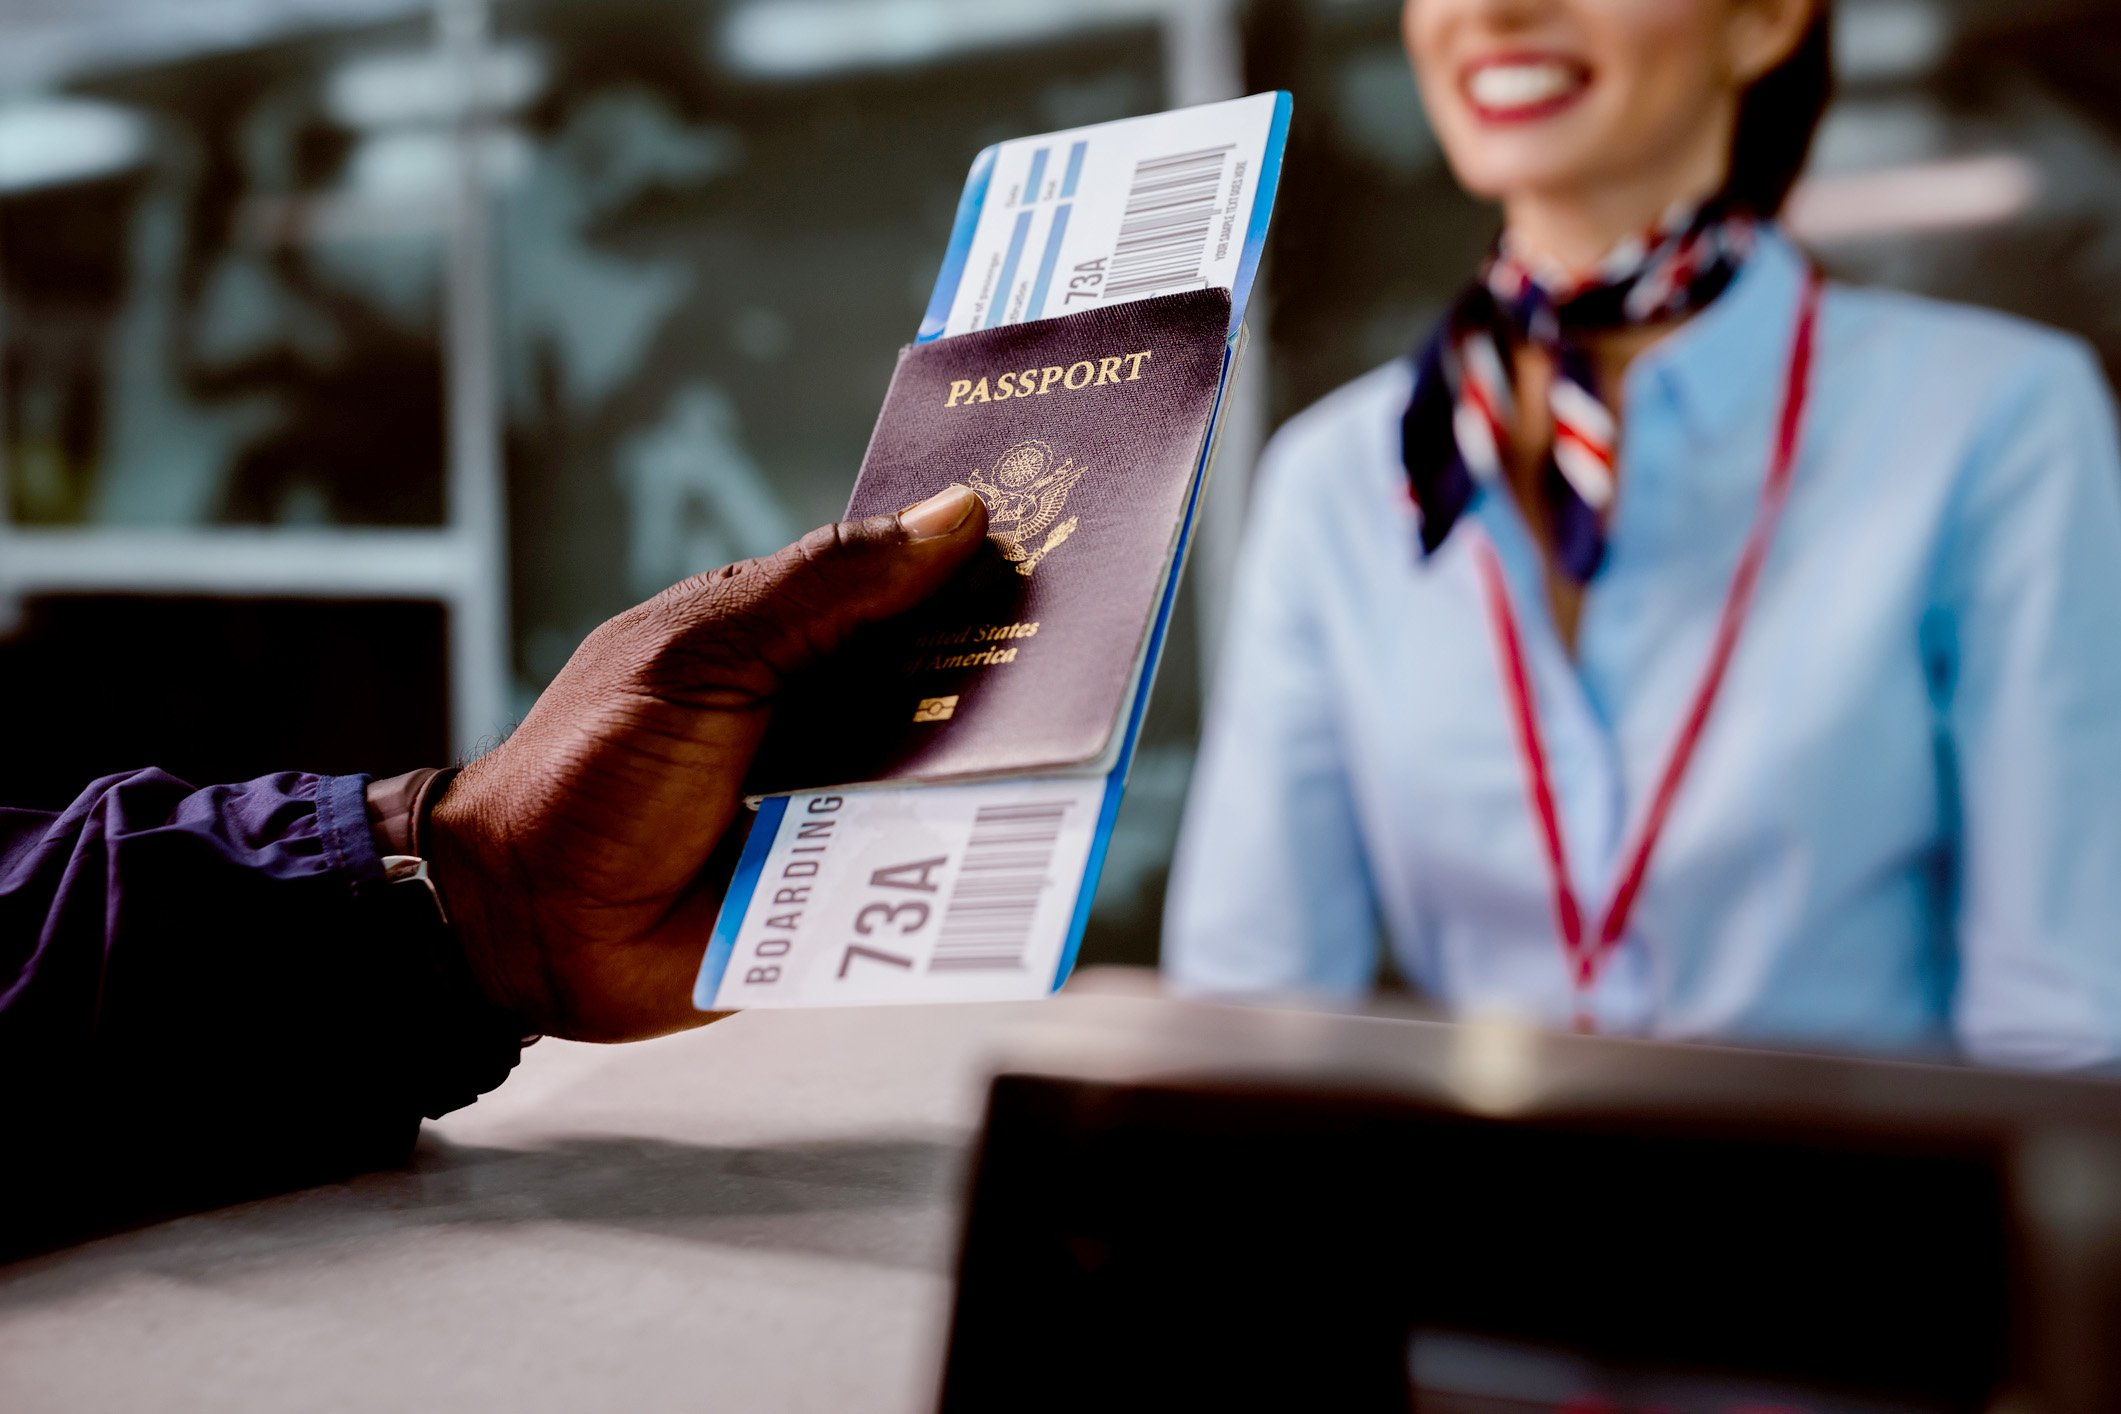 How Much Does a Passport Cost in 2020?